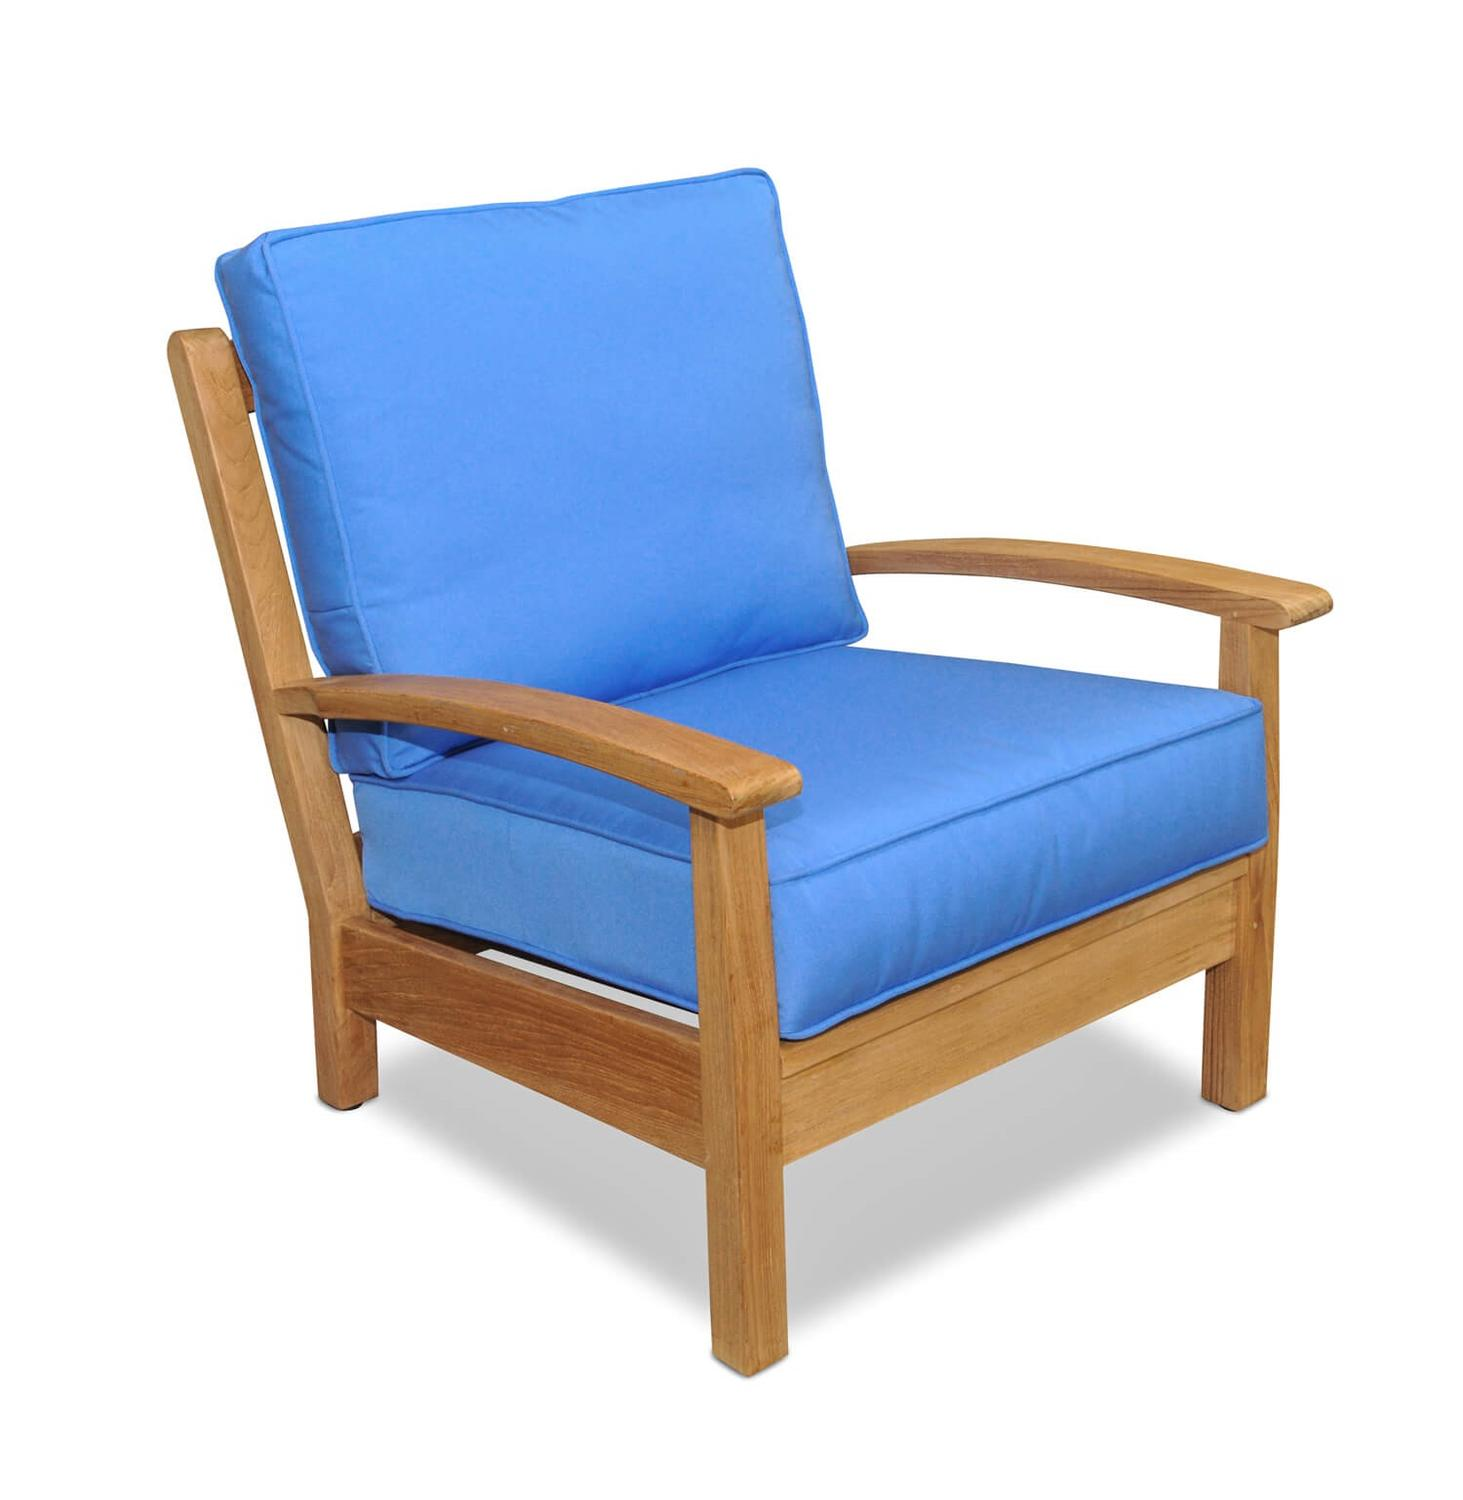 "34"" Natural Teak Deep Seating Outdoor Patio Lounge Chair with Capri Blue Cushion"